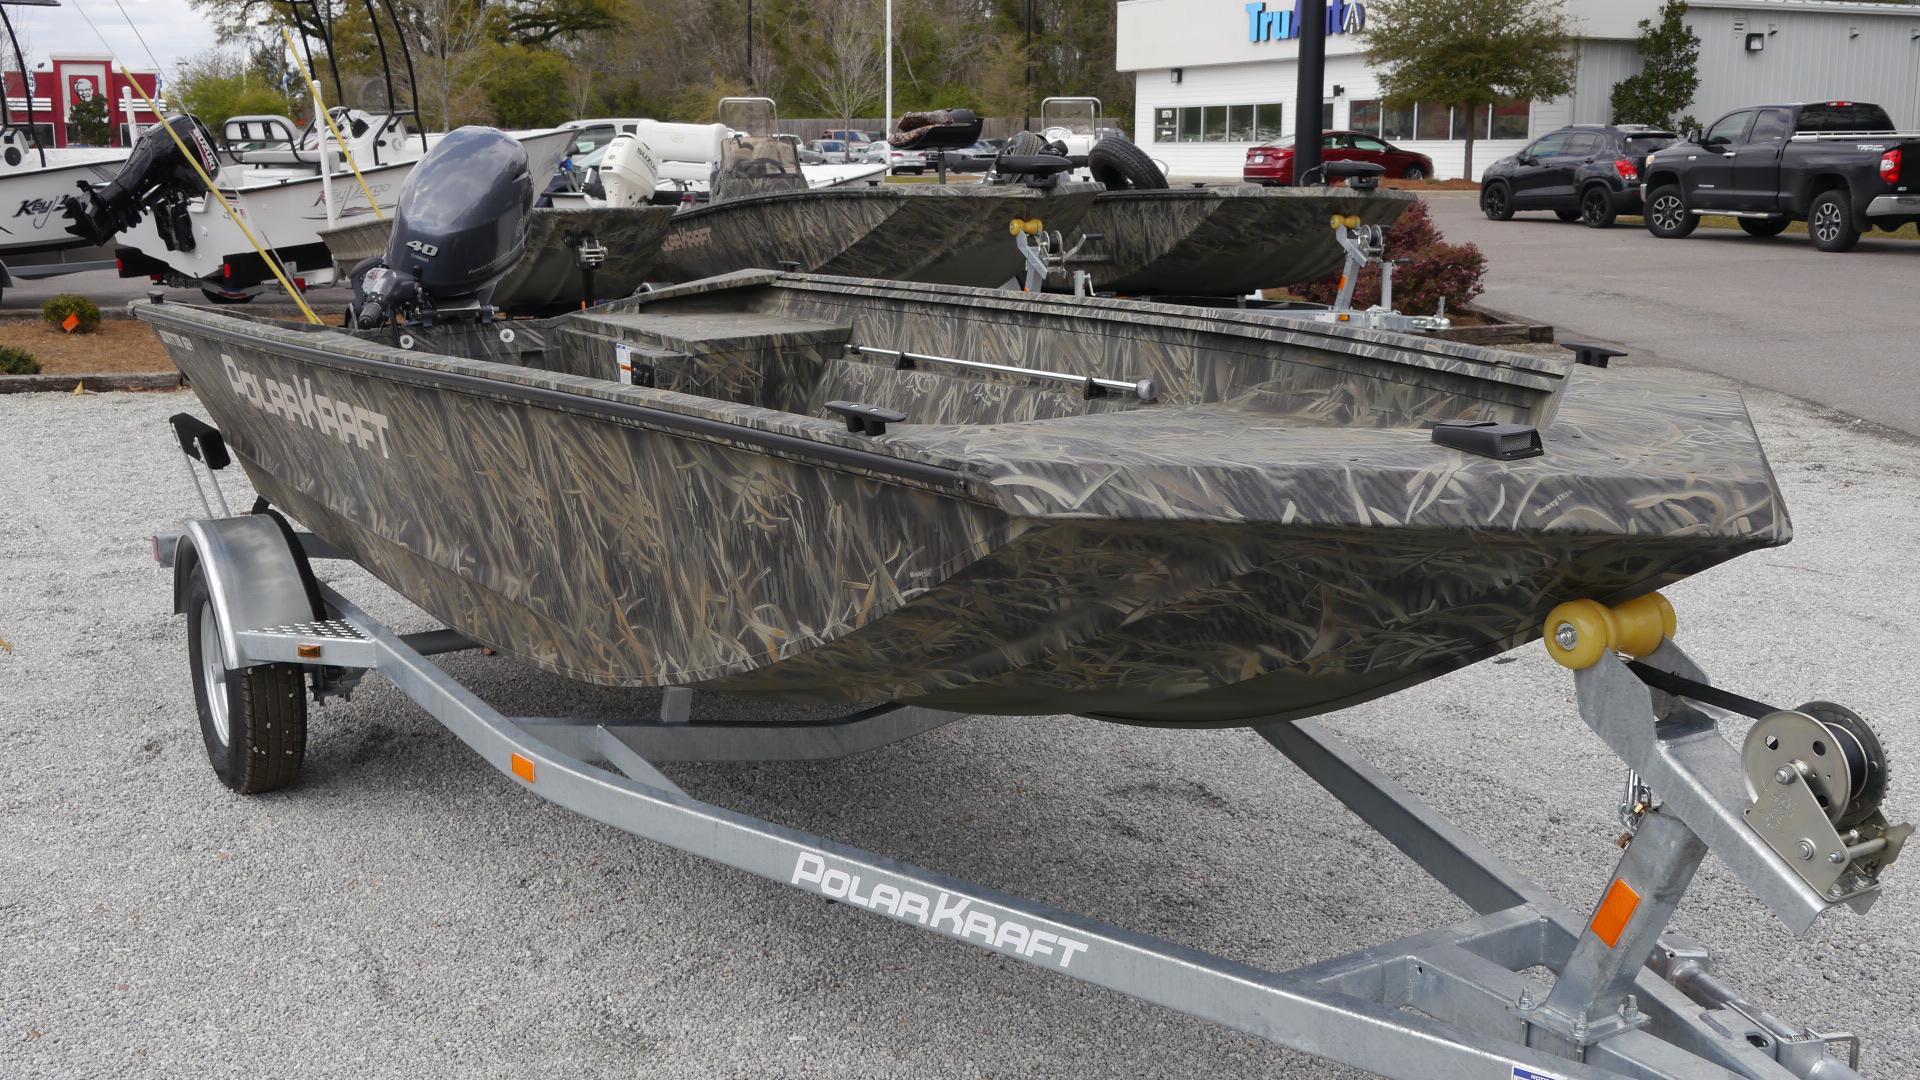 New 2018 Polar Kraft 1654 16' Welded Aluminum Fishing Boat